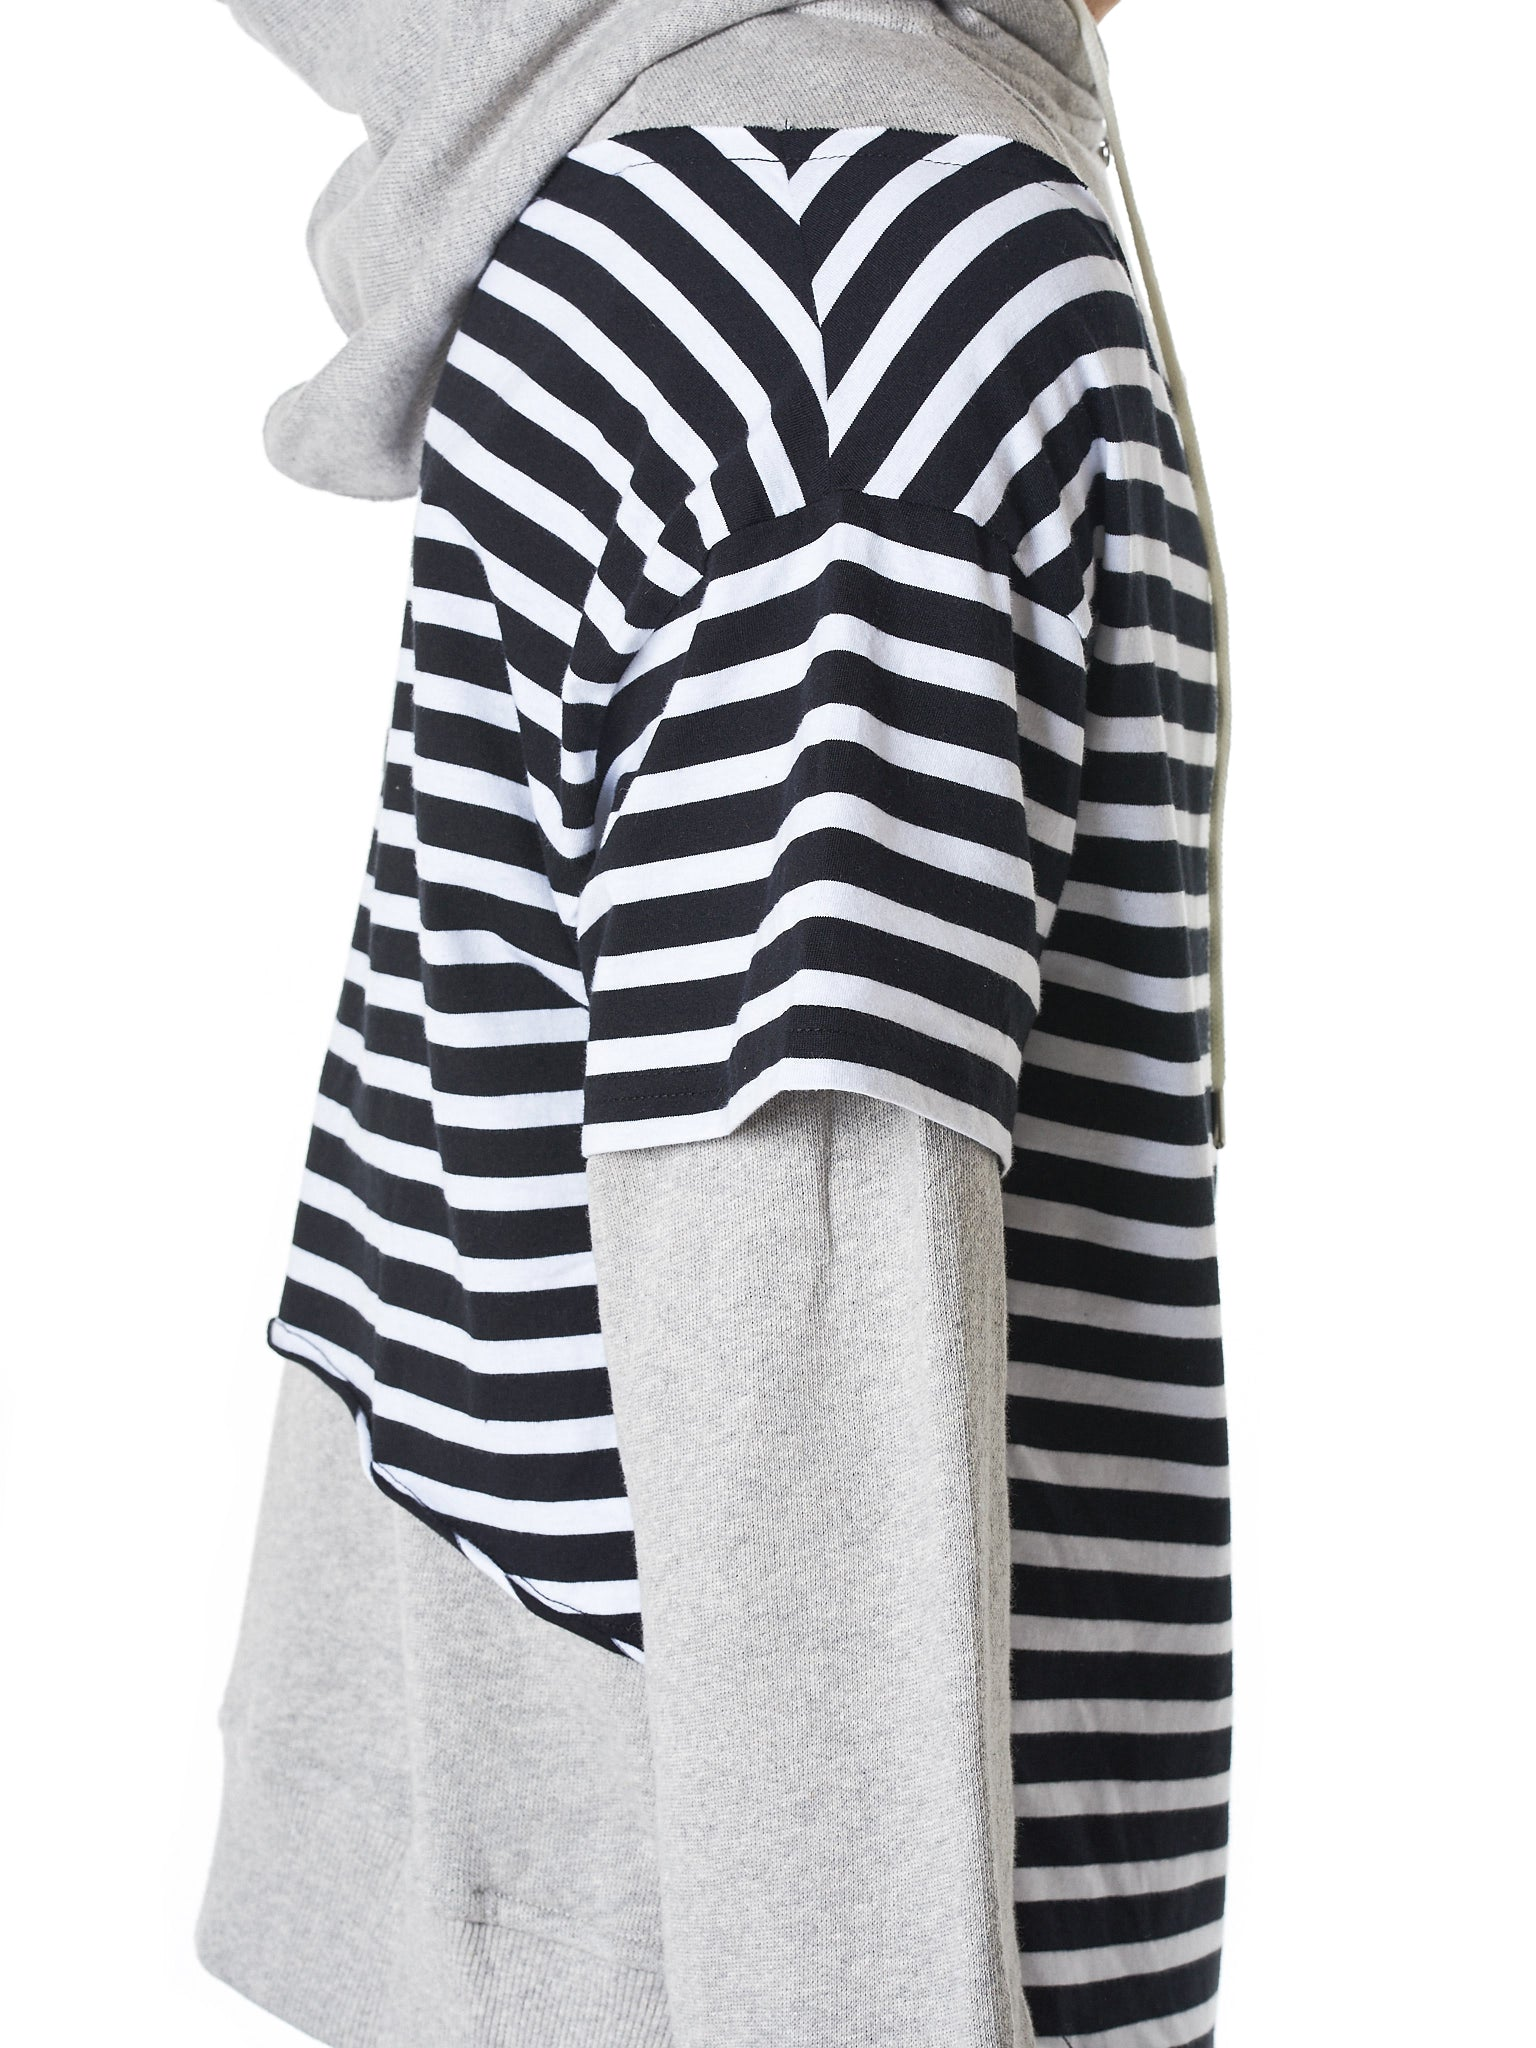 Charles Jeffrey Loverboy Striped Hoodie - Hlorenzo Detail 1